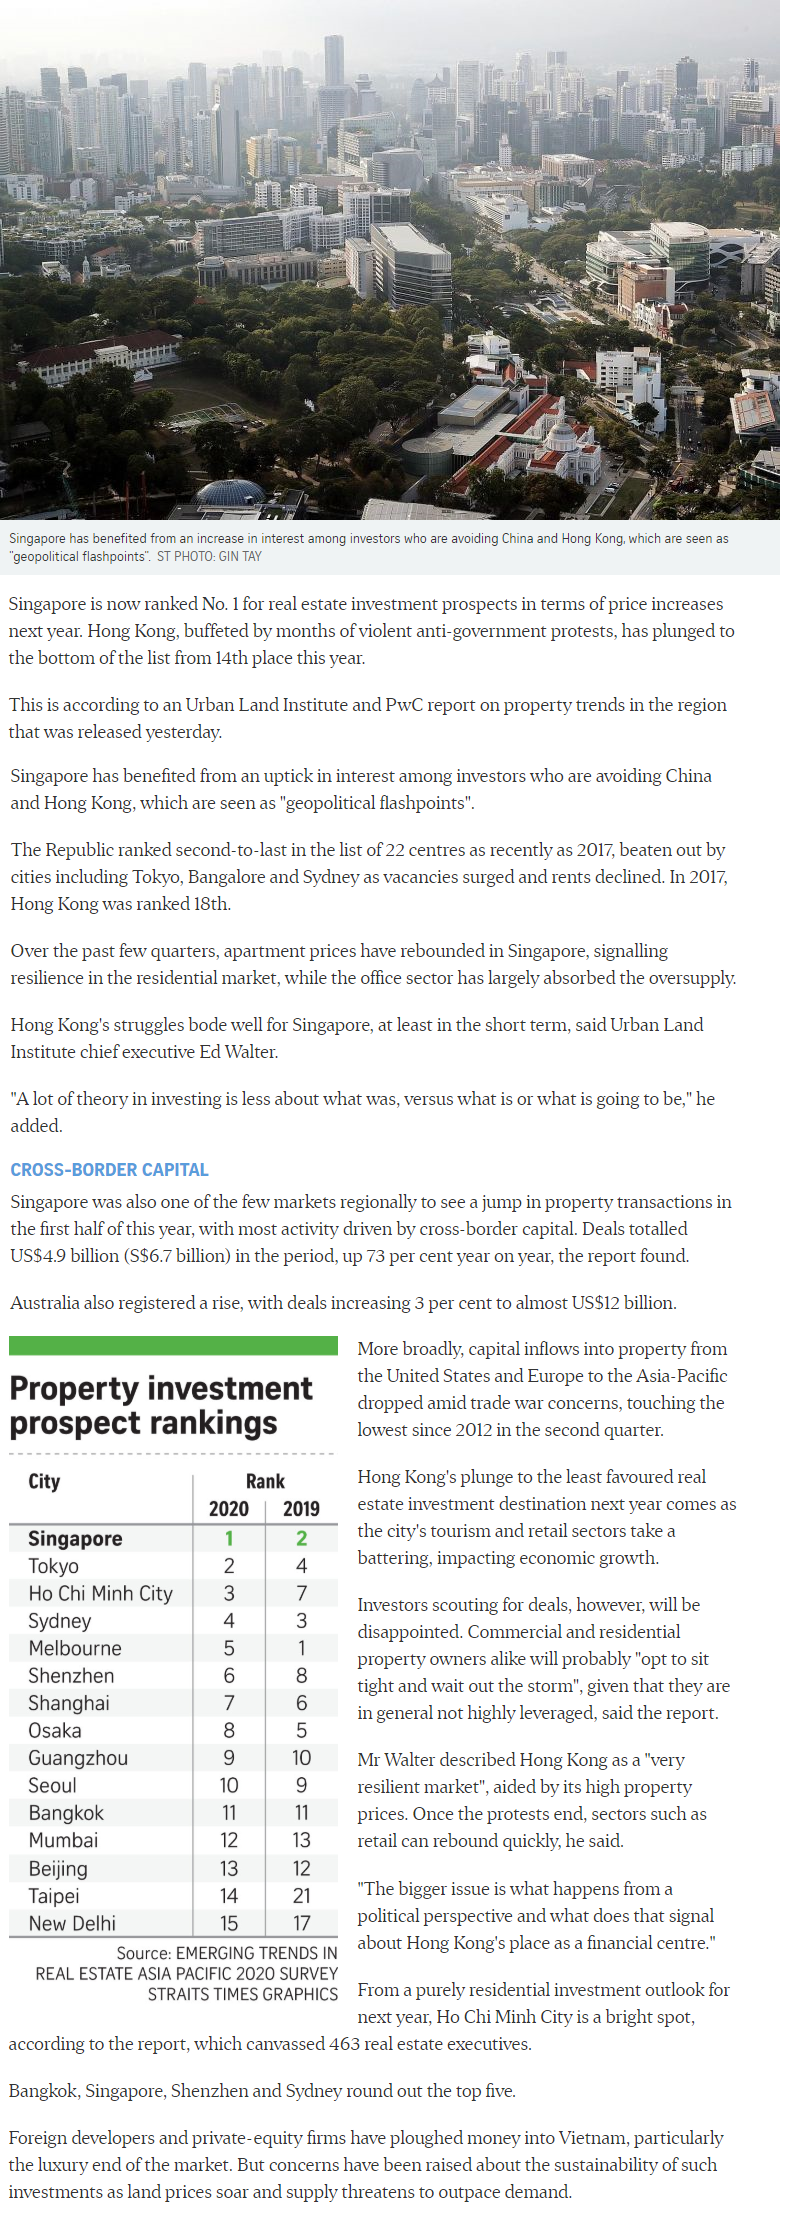 Irwell Hill Residences - Singapore Tops Region For Property Investment Prospects